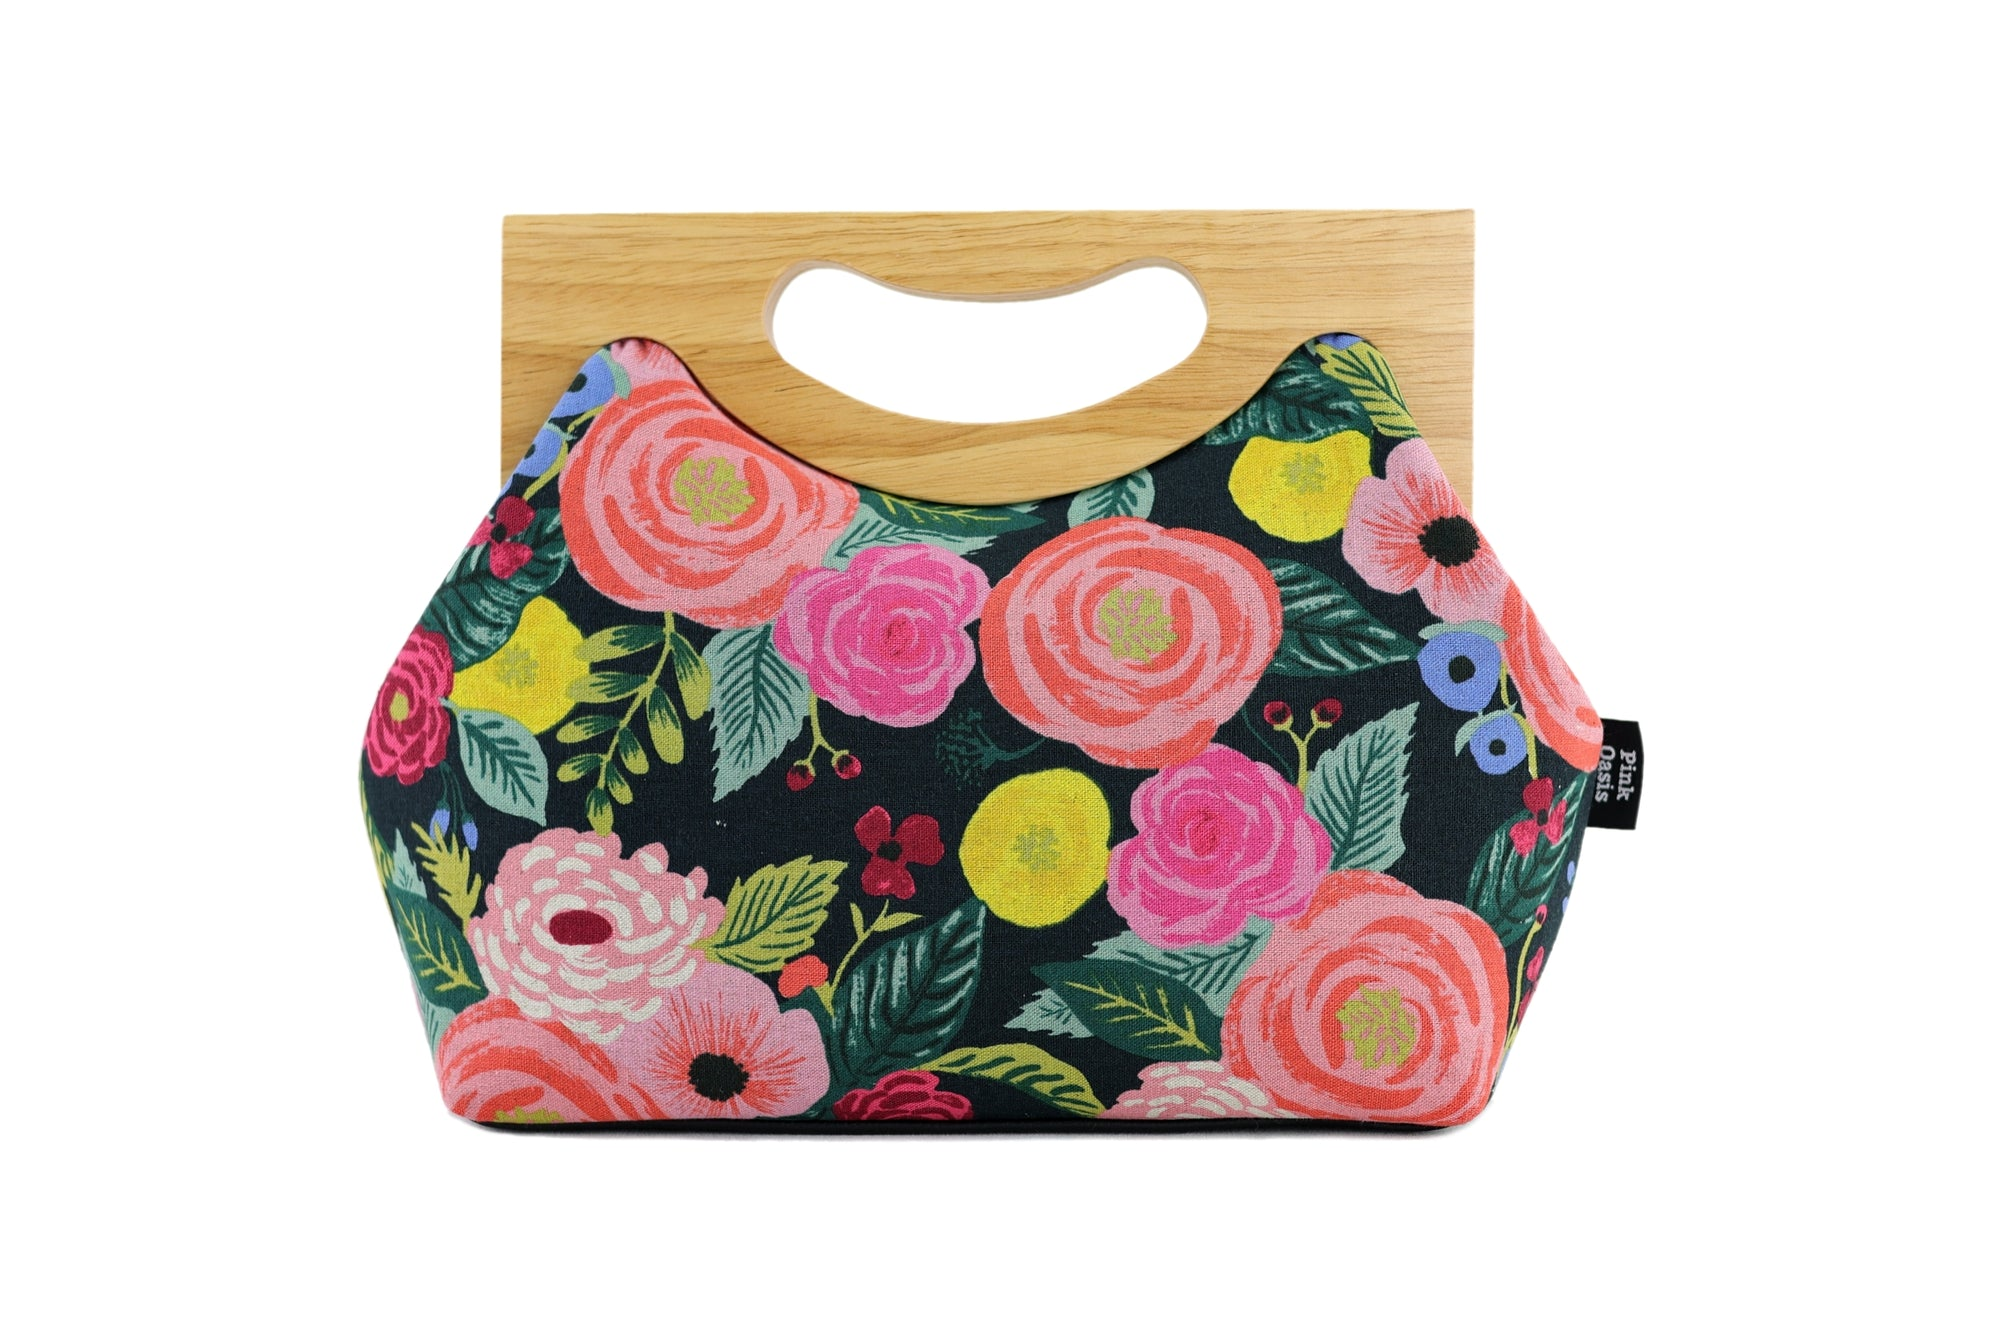 English Garden Roses Medium Women's Clutch Bag | PINK OASIS